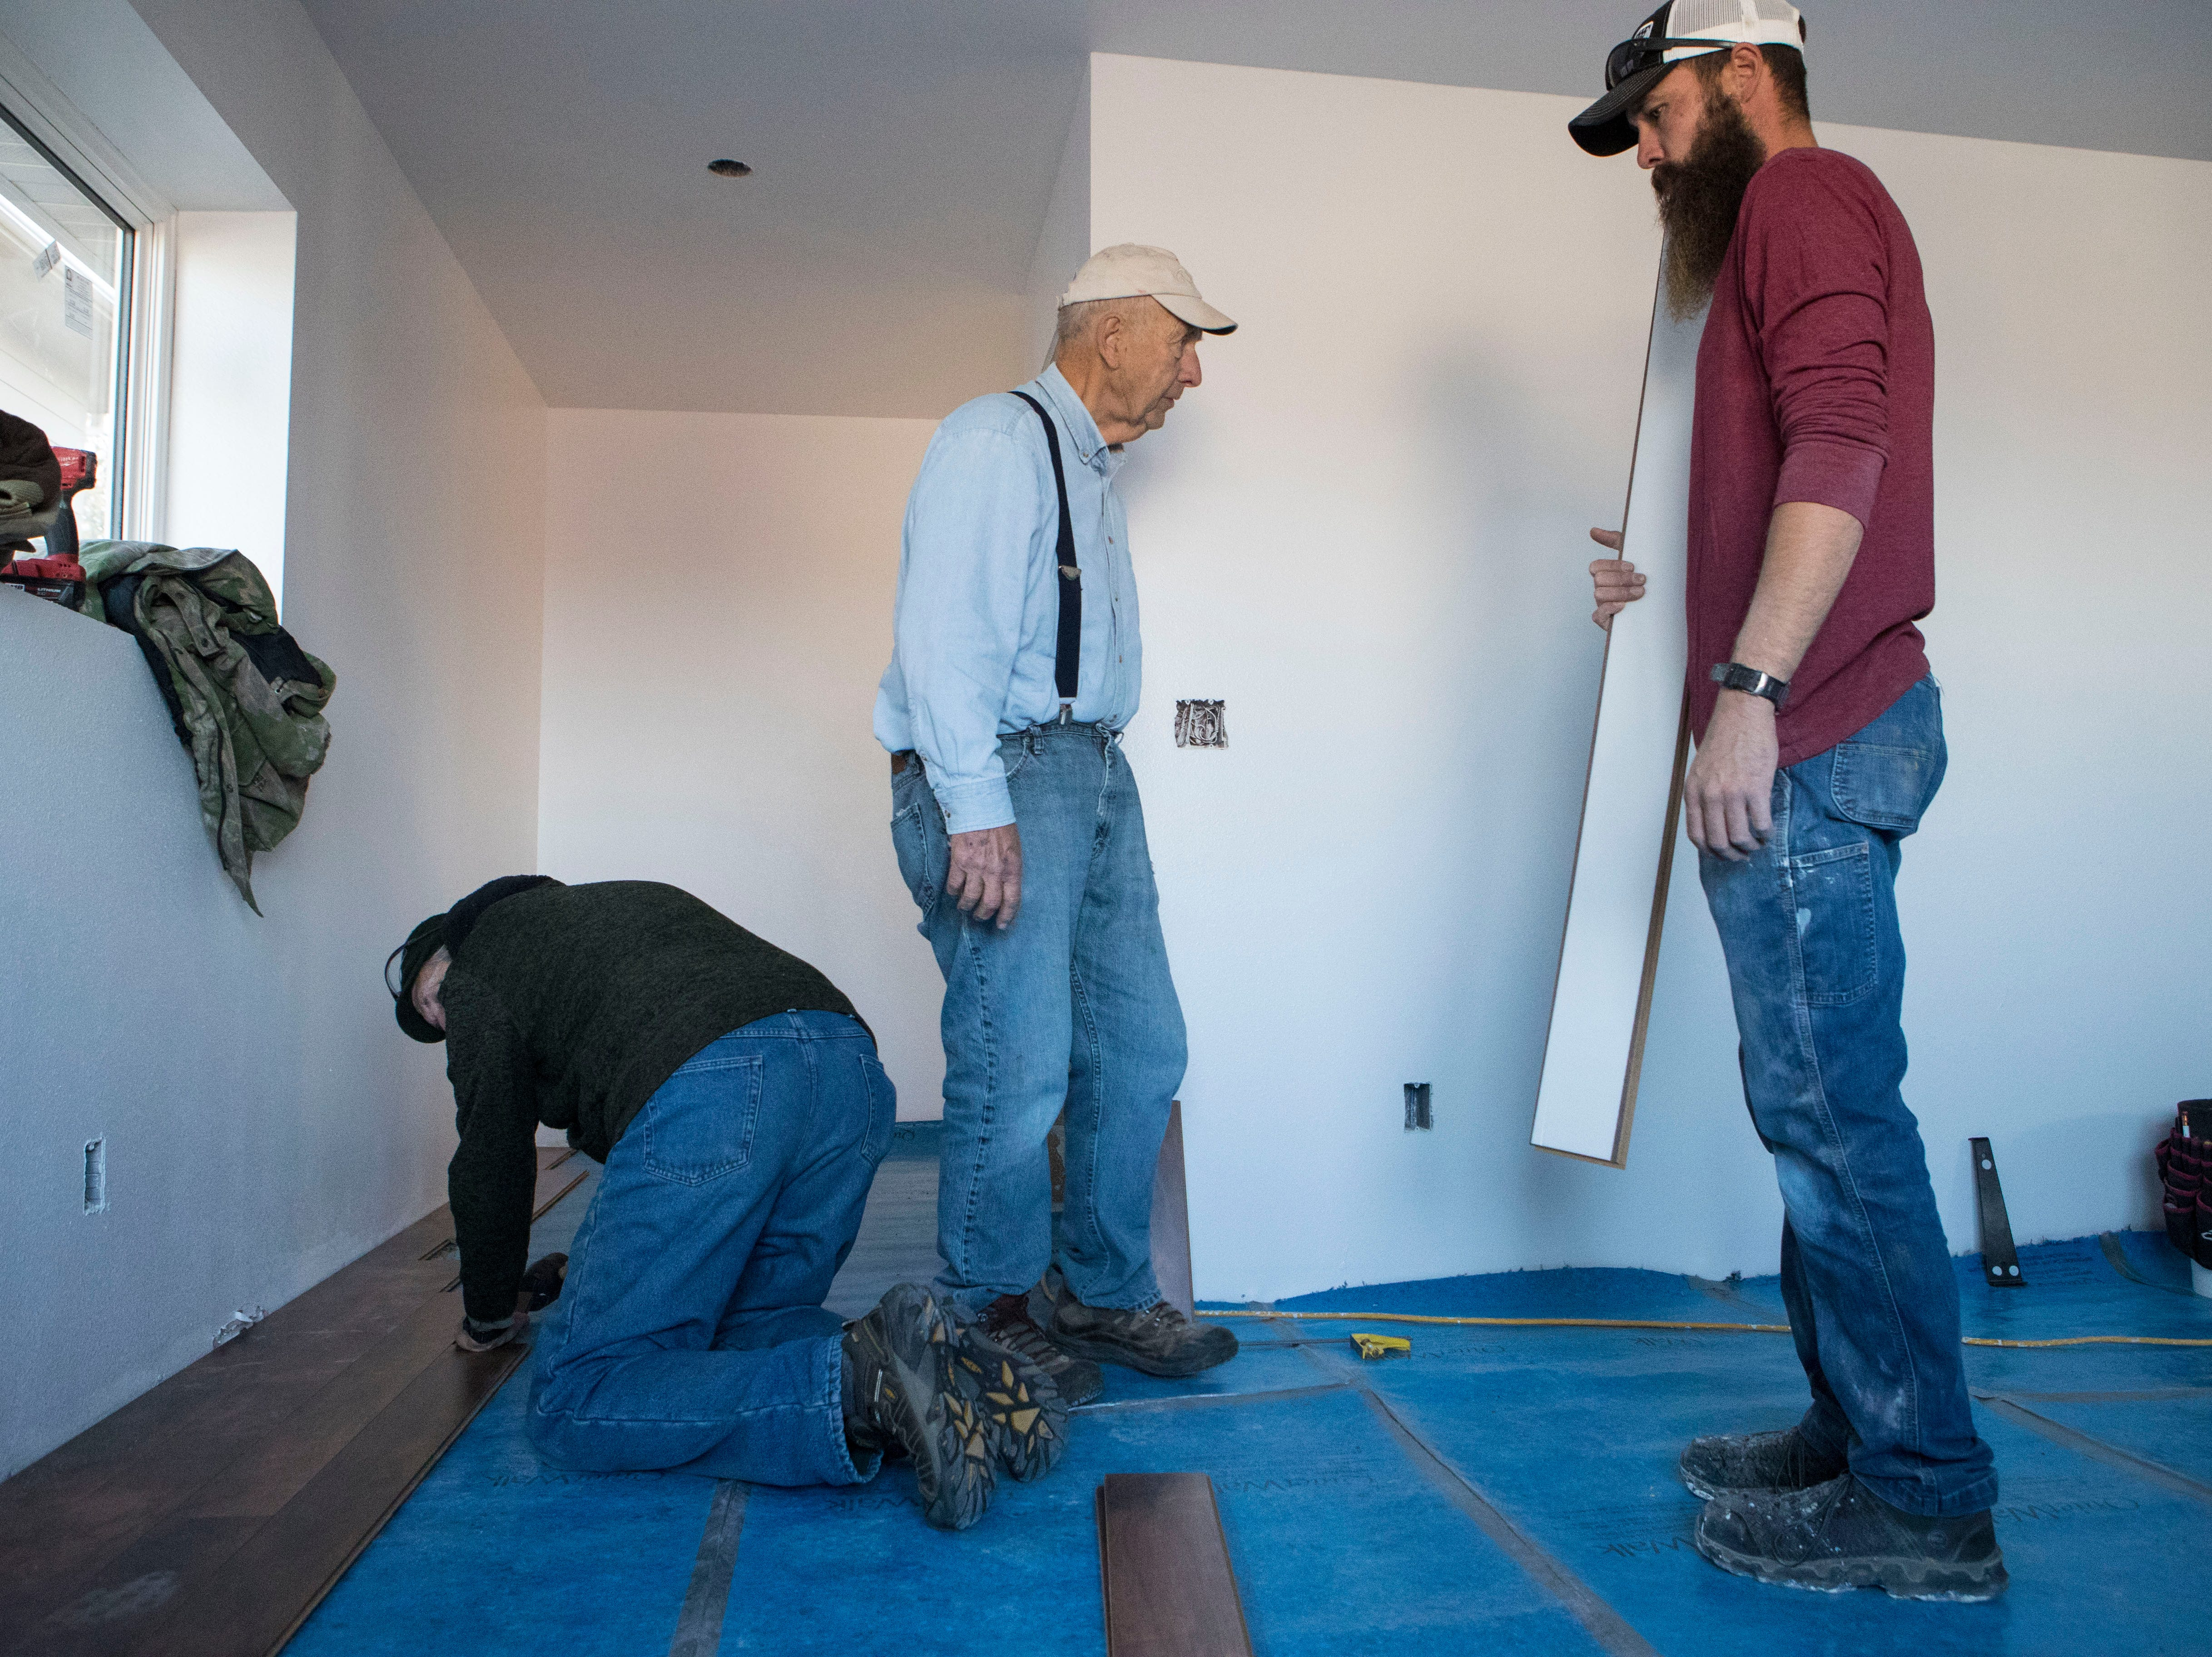 Jack Mallek (left), Arnie Osmundson and Construction Foreman Dustin Kuhl work on the flooring in a house in Sioux Falls, S.D., Thursday, Nov. 15, 2018.